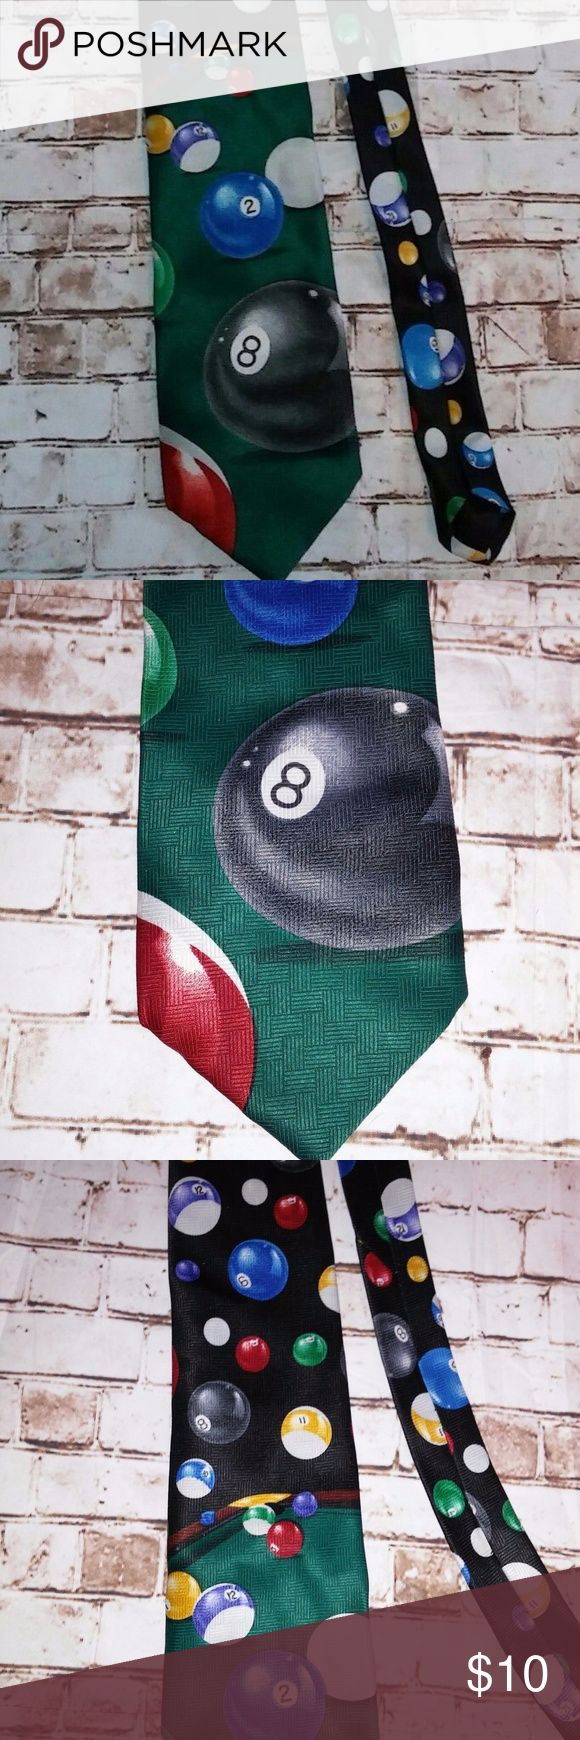 Mens Billiards Tie ADDICTION Men's Novelty Tie--Features a billiards theme with pool table, 8 ball, and other balls. A great novelty tie for the pool shark in your life. Great condition with no visible flaws or defects Addiction Accessories Ties